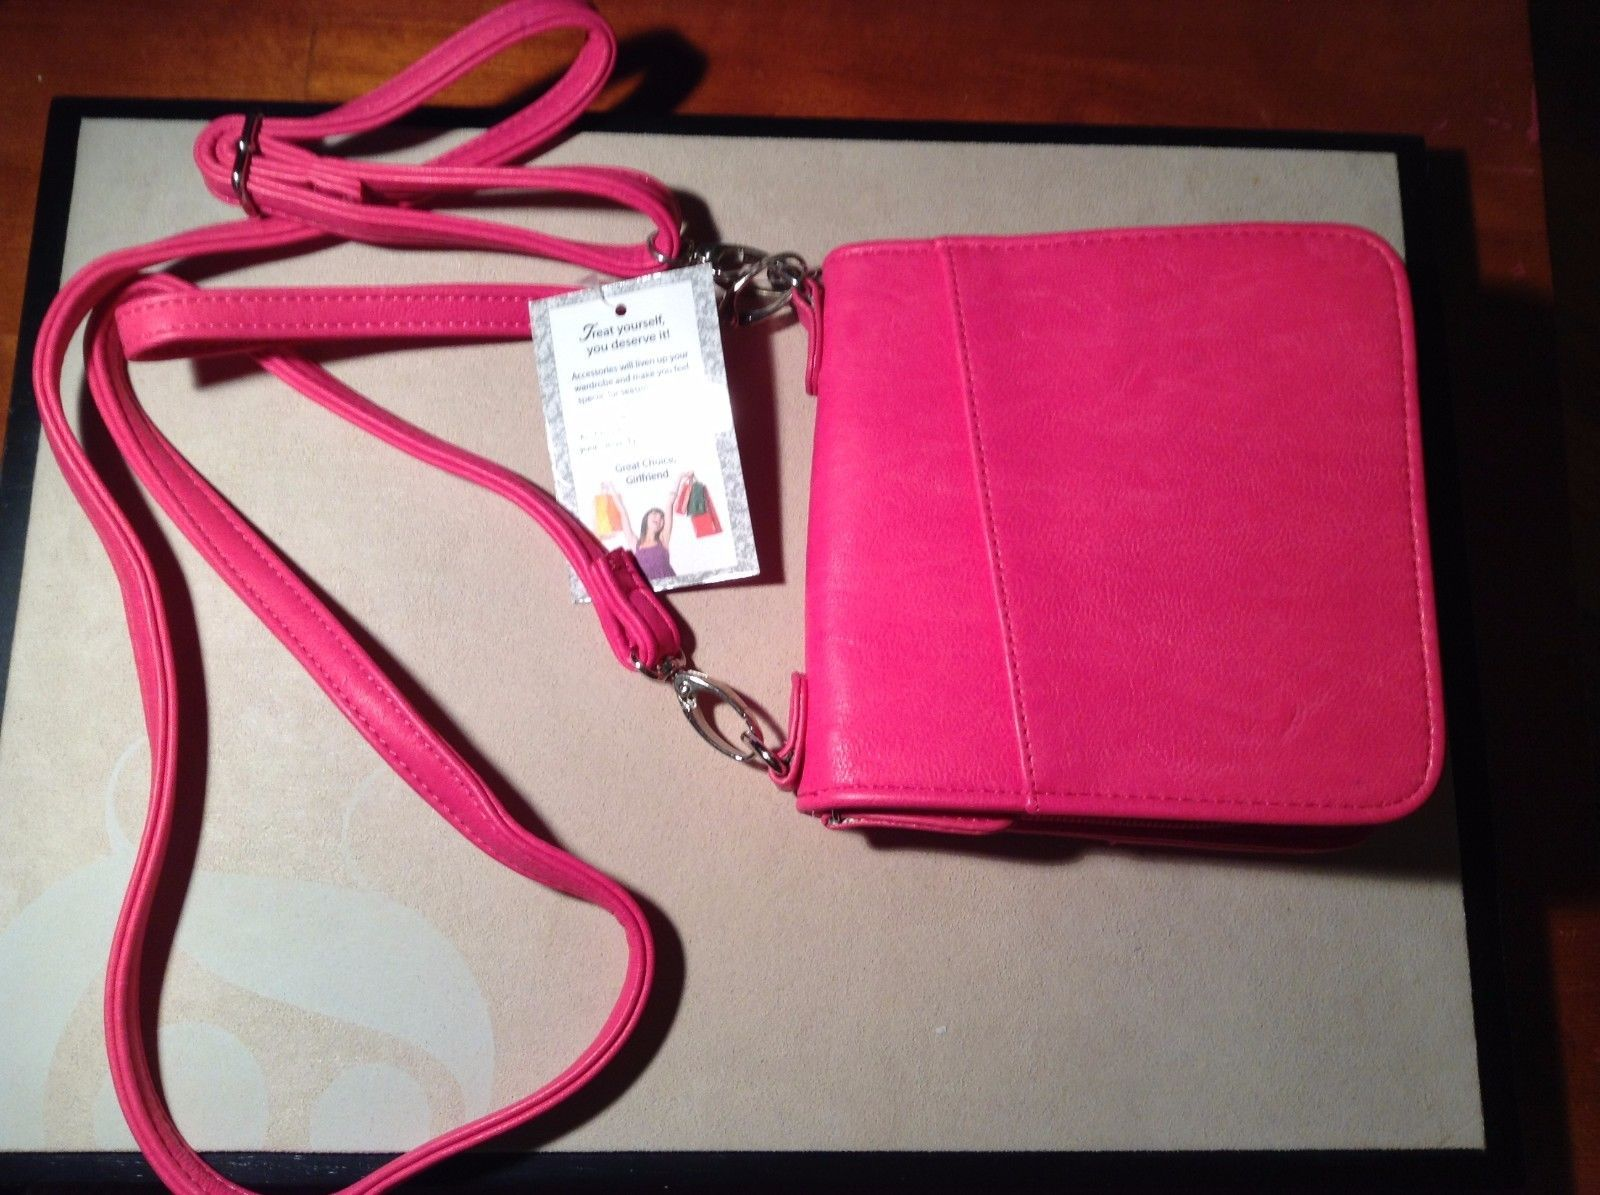 New Kristine Hot Pink Wallet 4 Card Holders Detachable Long And Short Handles